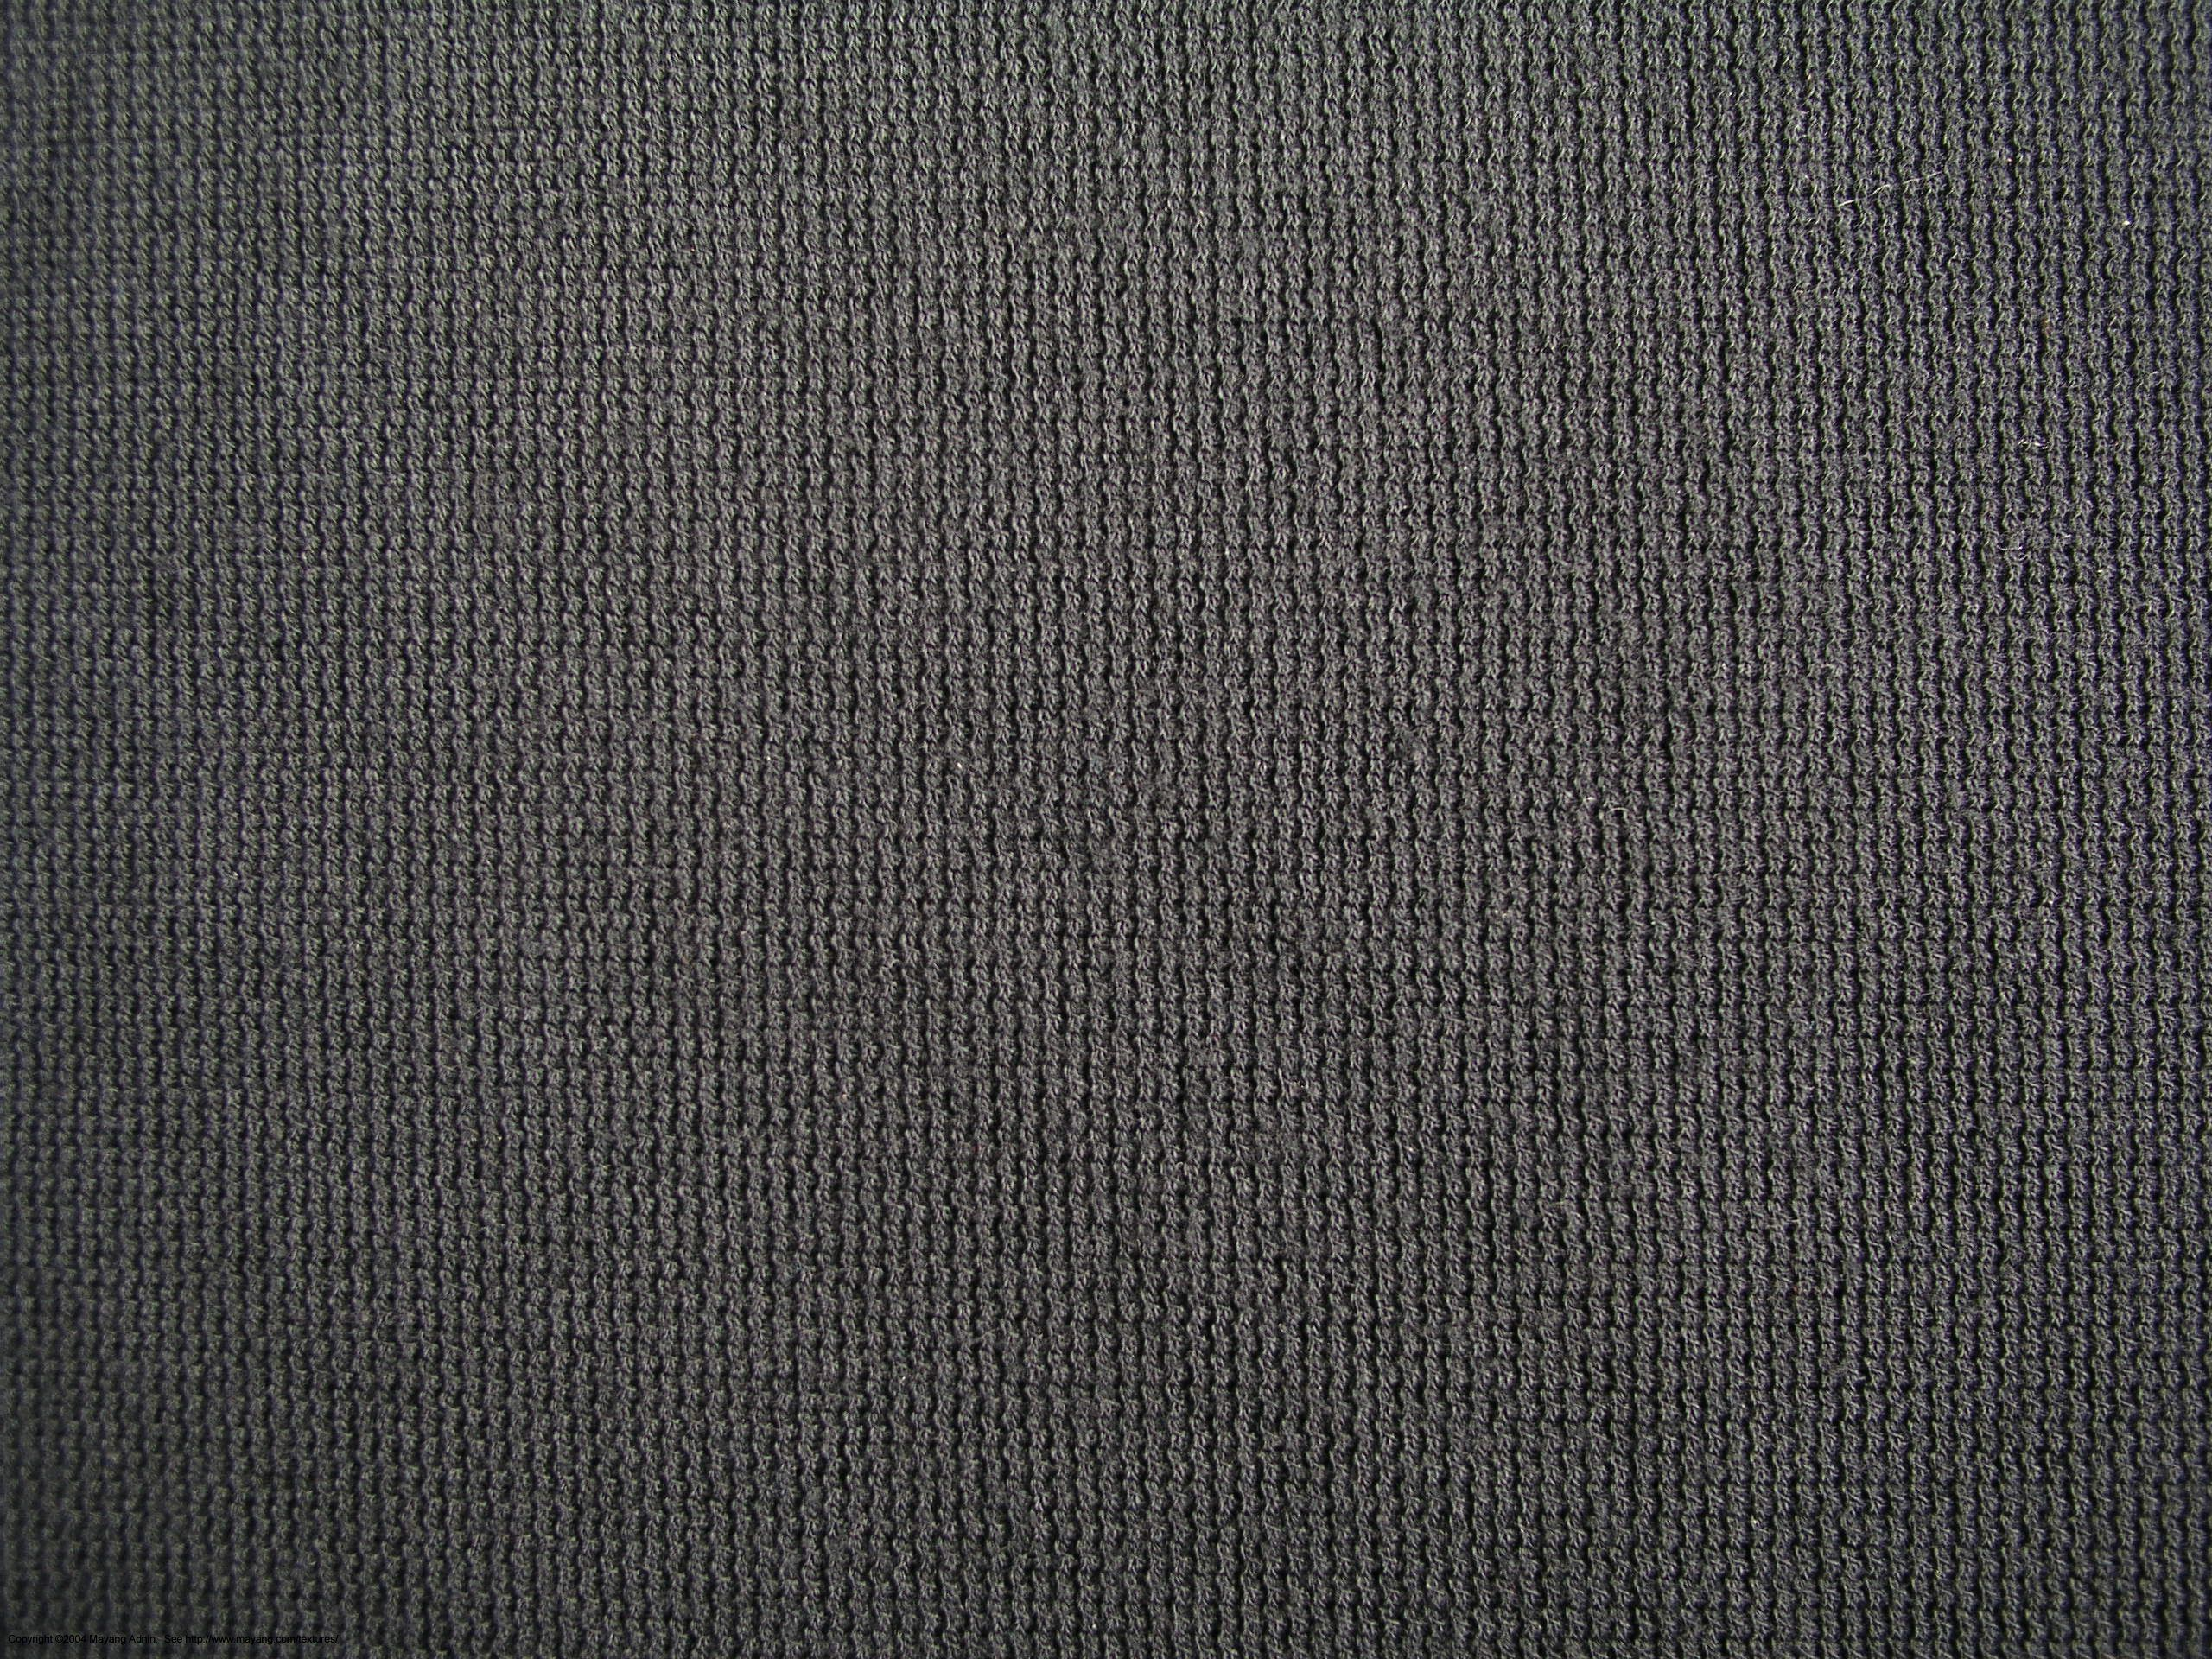 Cloth texture google search material studies for Fabric material